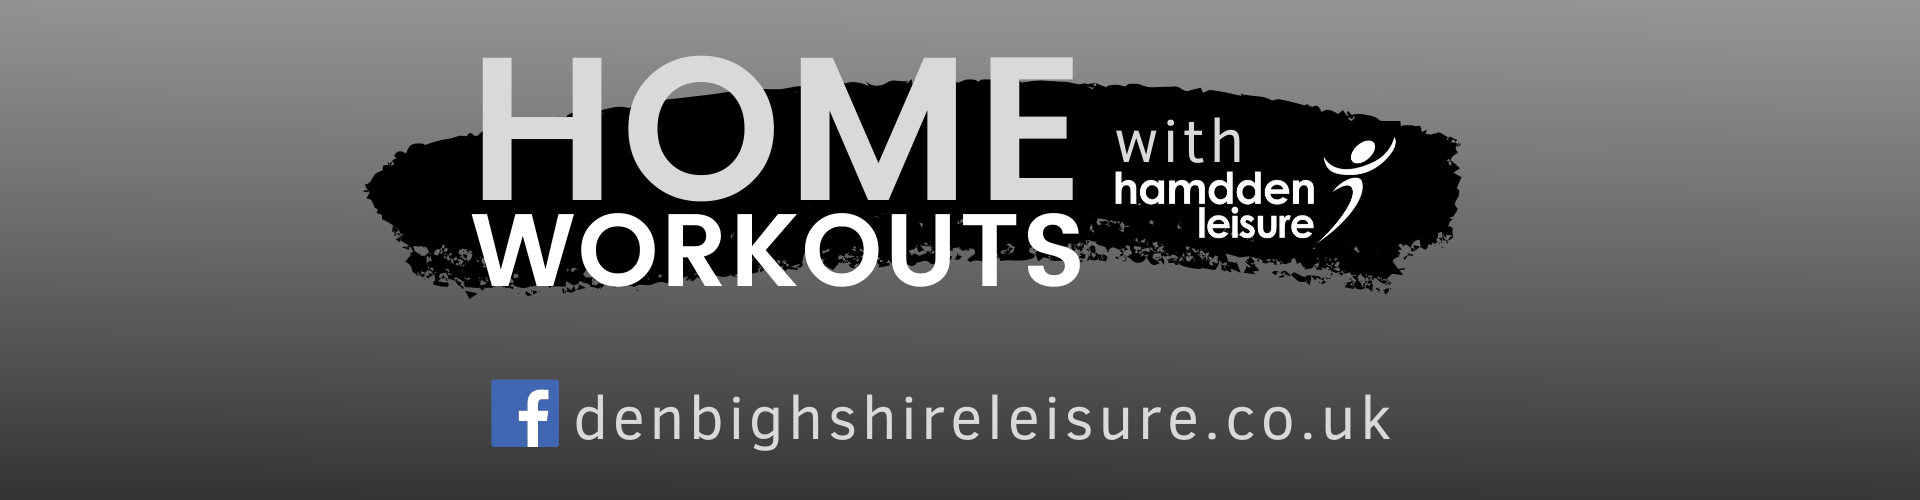 Home workouts banner